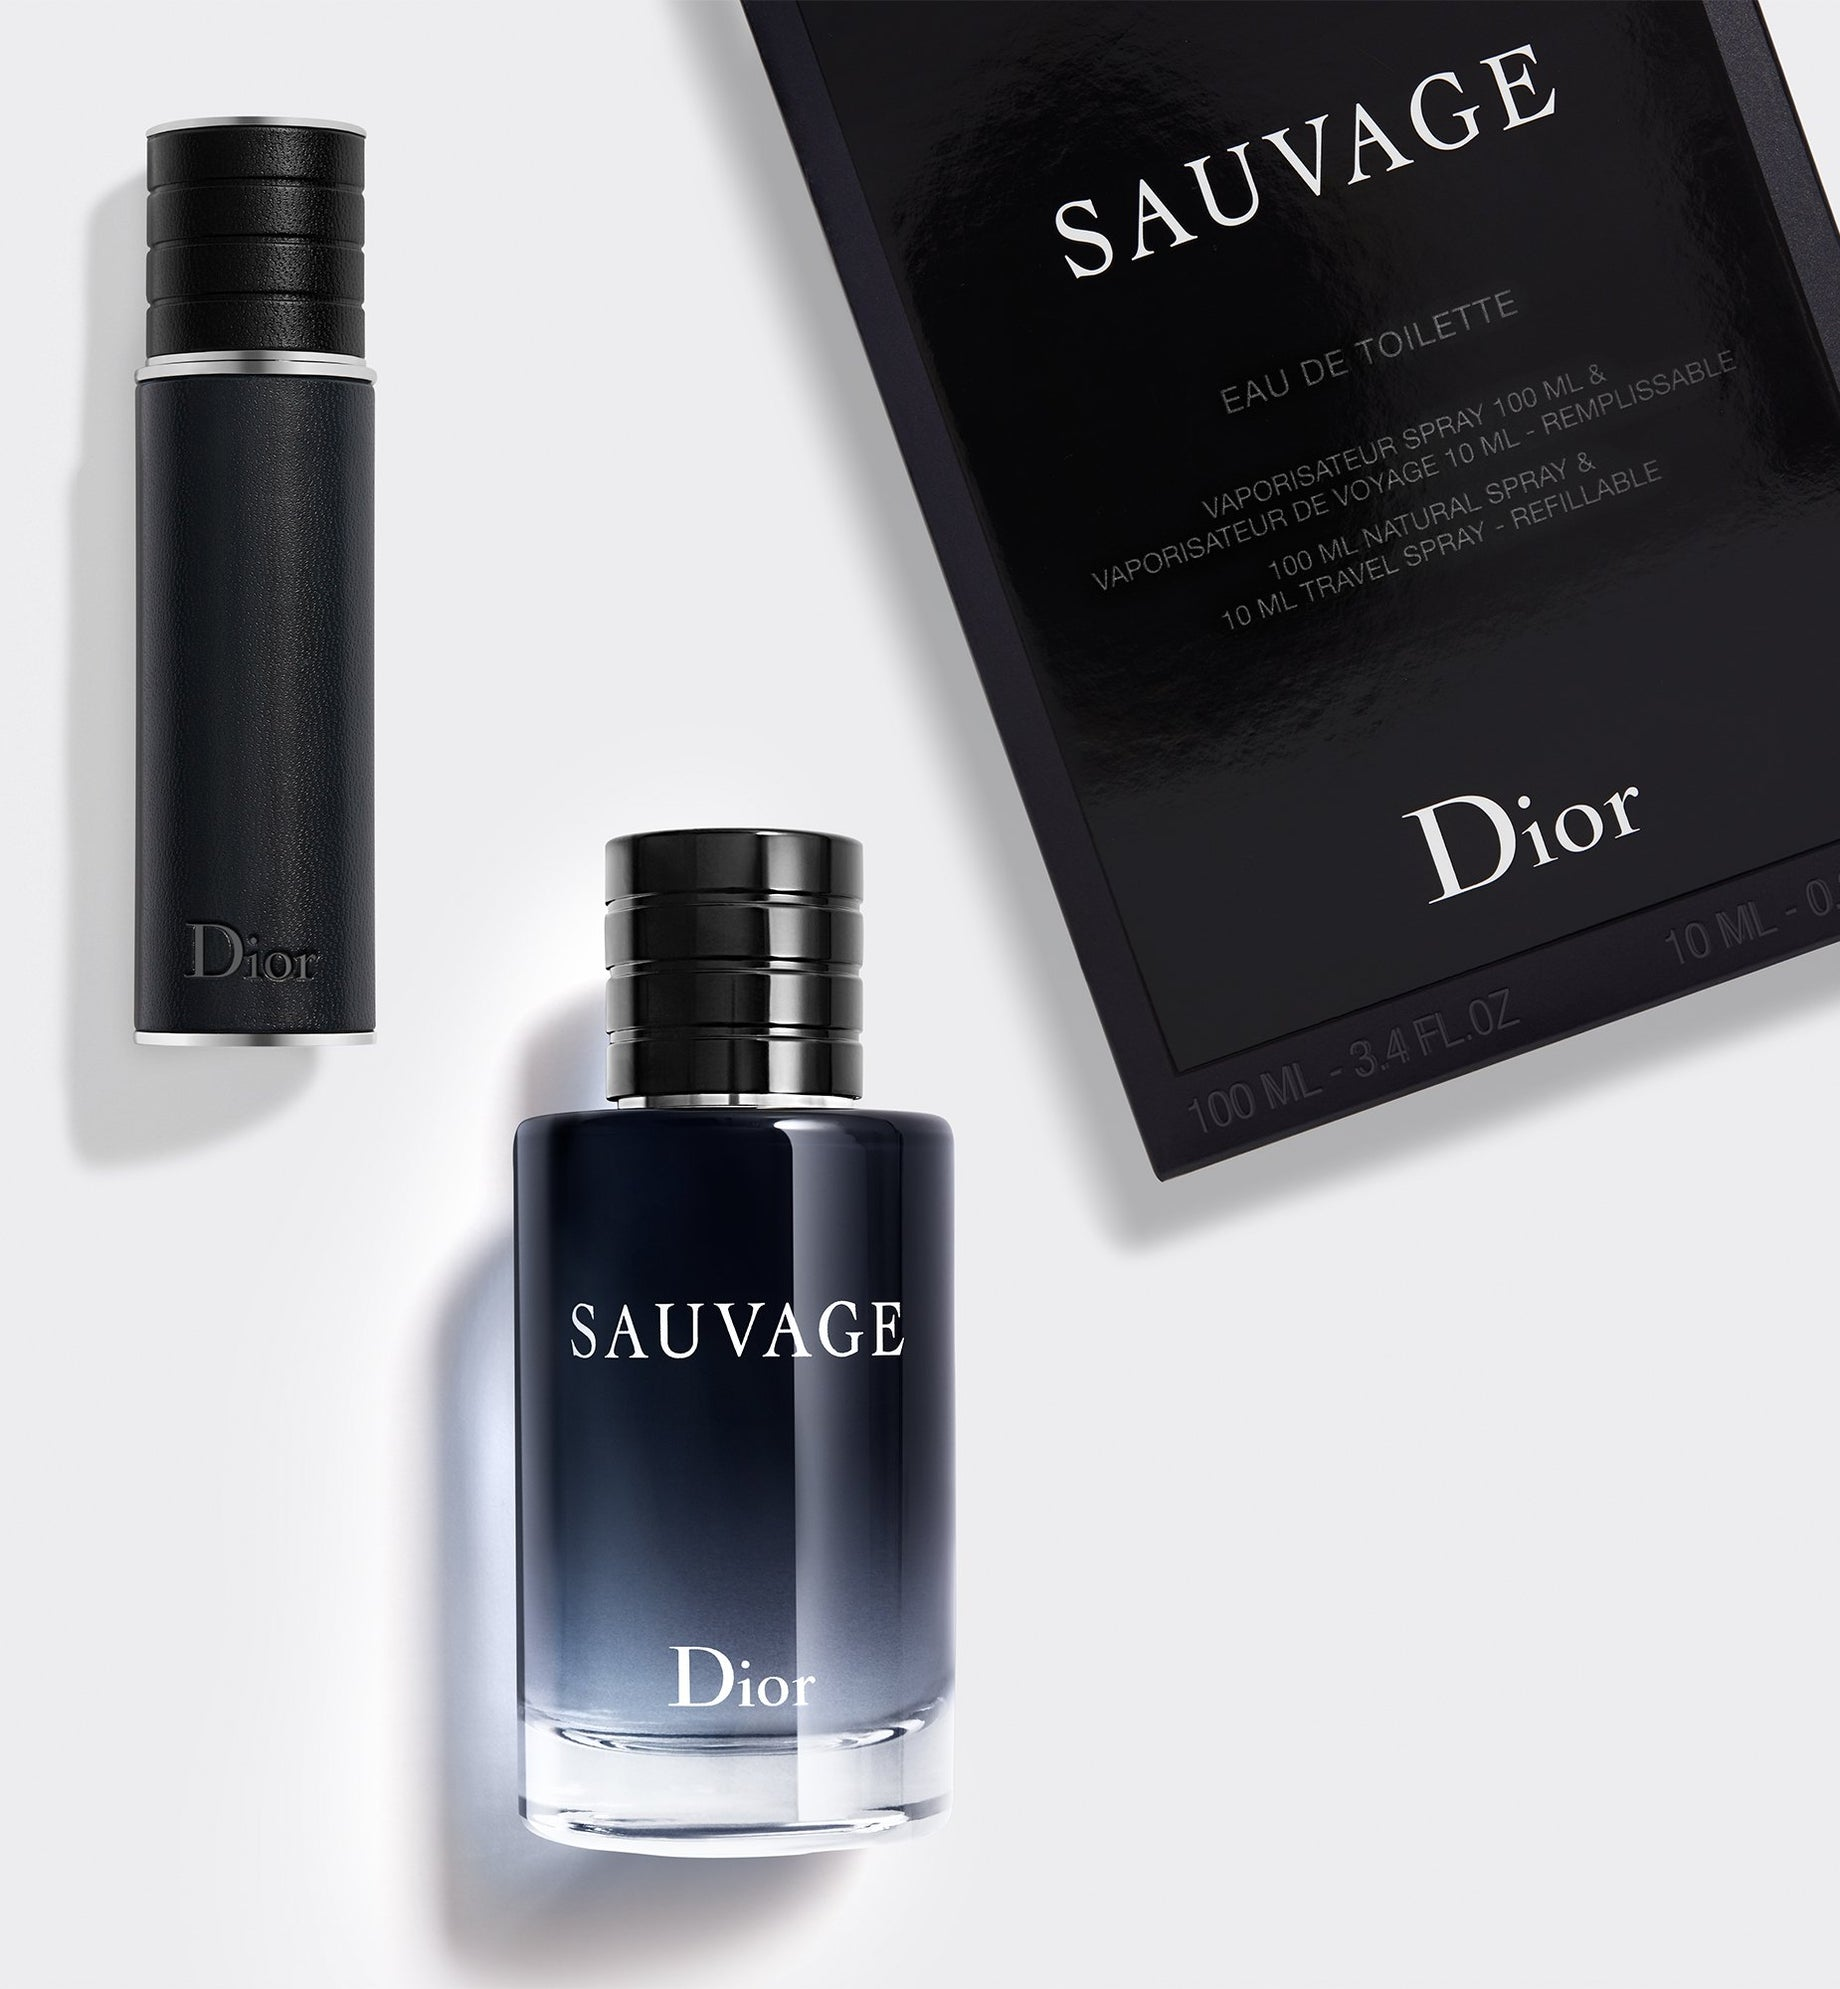 SAUVAGE EAU DE TOILETTE 100ml OFFER: The iconic fragrance with a complimentary travel spray